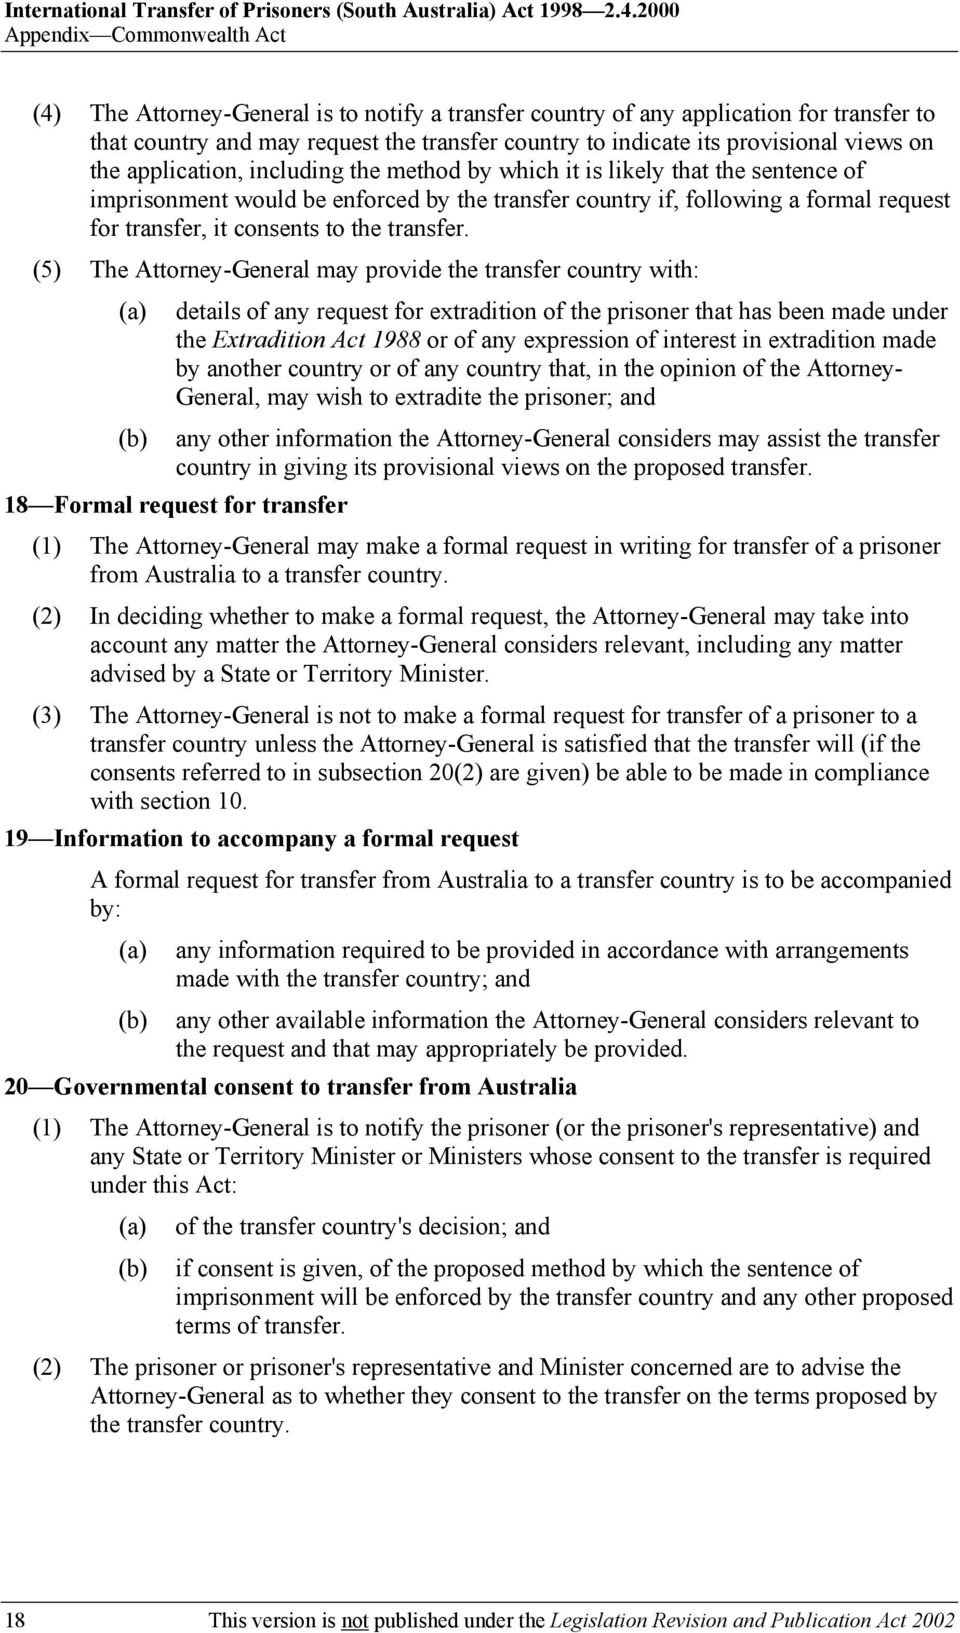 provisional views on the application, including the method by which it is likely that the sentence of imprisonment would be enforced by the transfer country if, following a formal request for